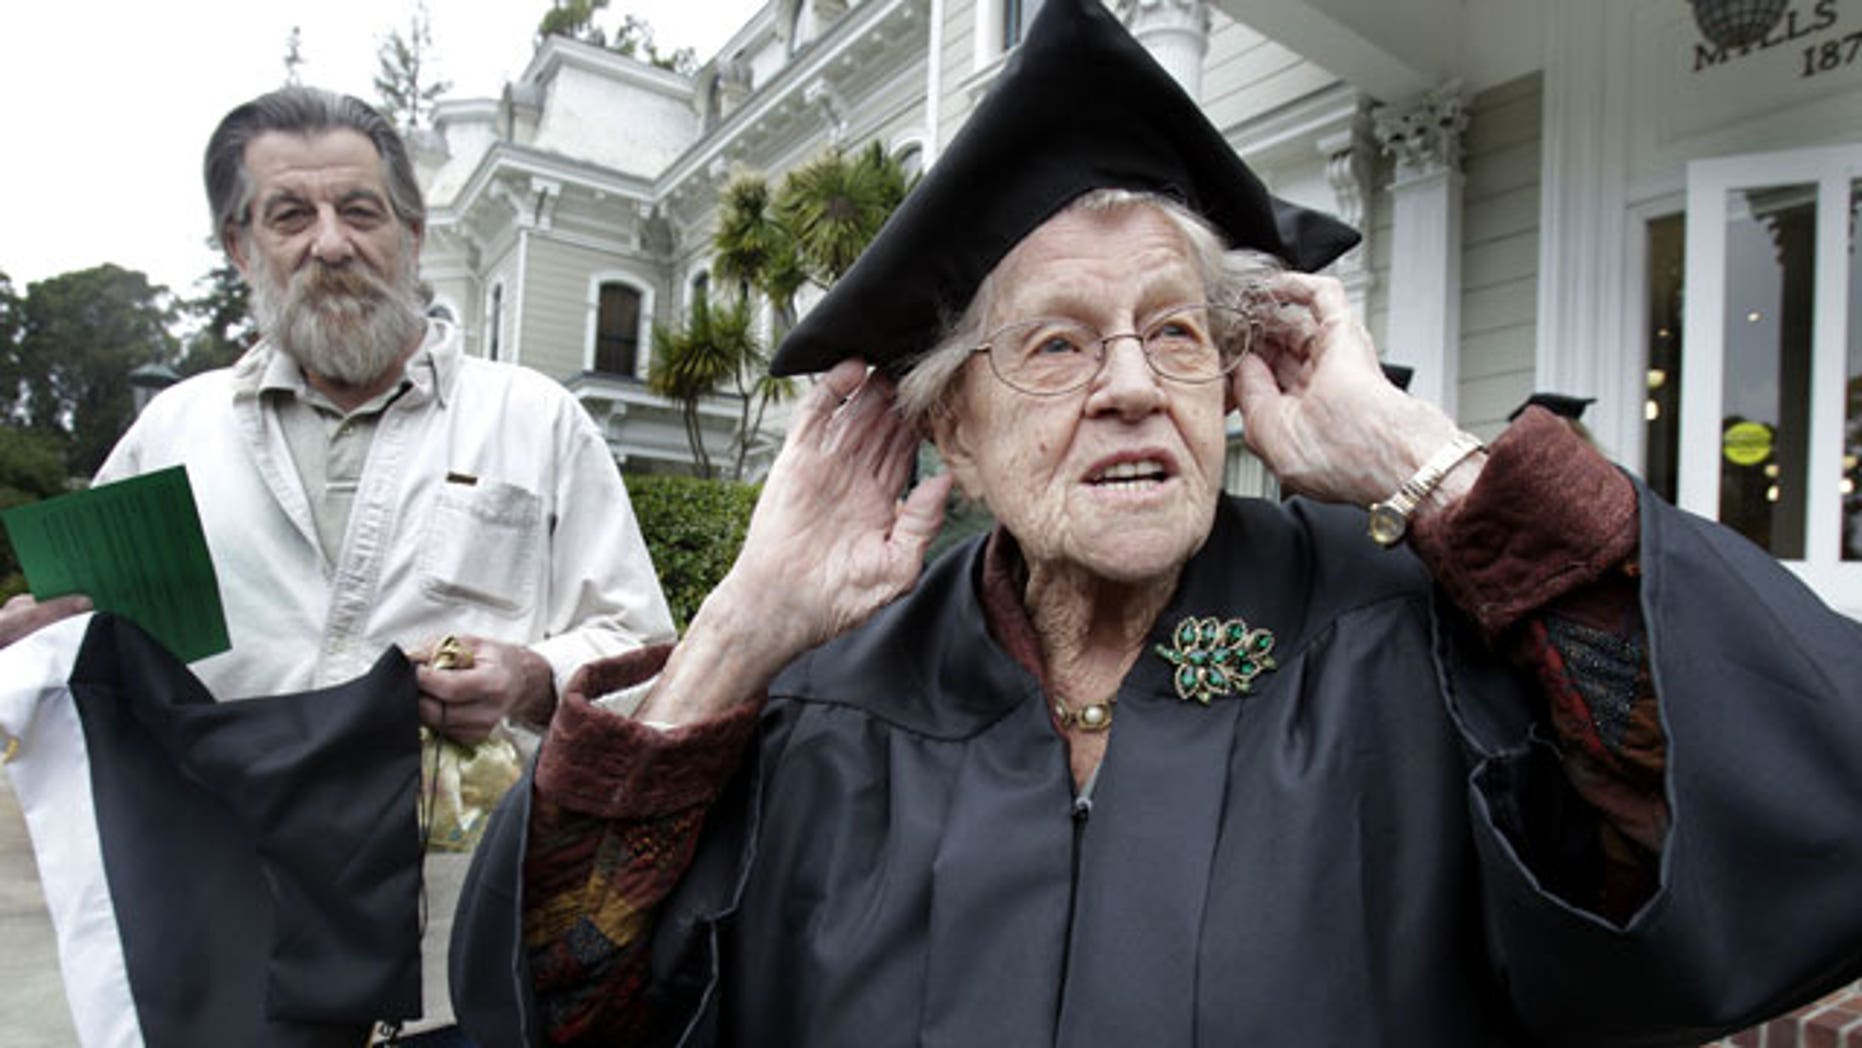 May 15: Hazel Soares, 94, right, gets ready before the start of commencement exercises at Mills College, as her son Matthew Soares, 59, looks on in Oakland, Calif.